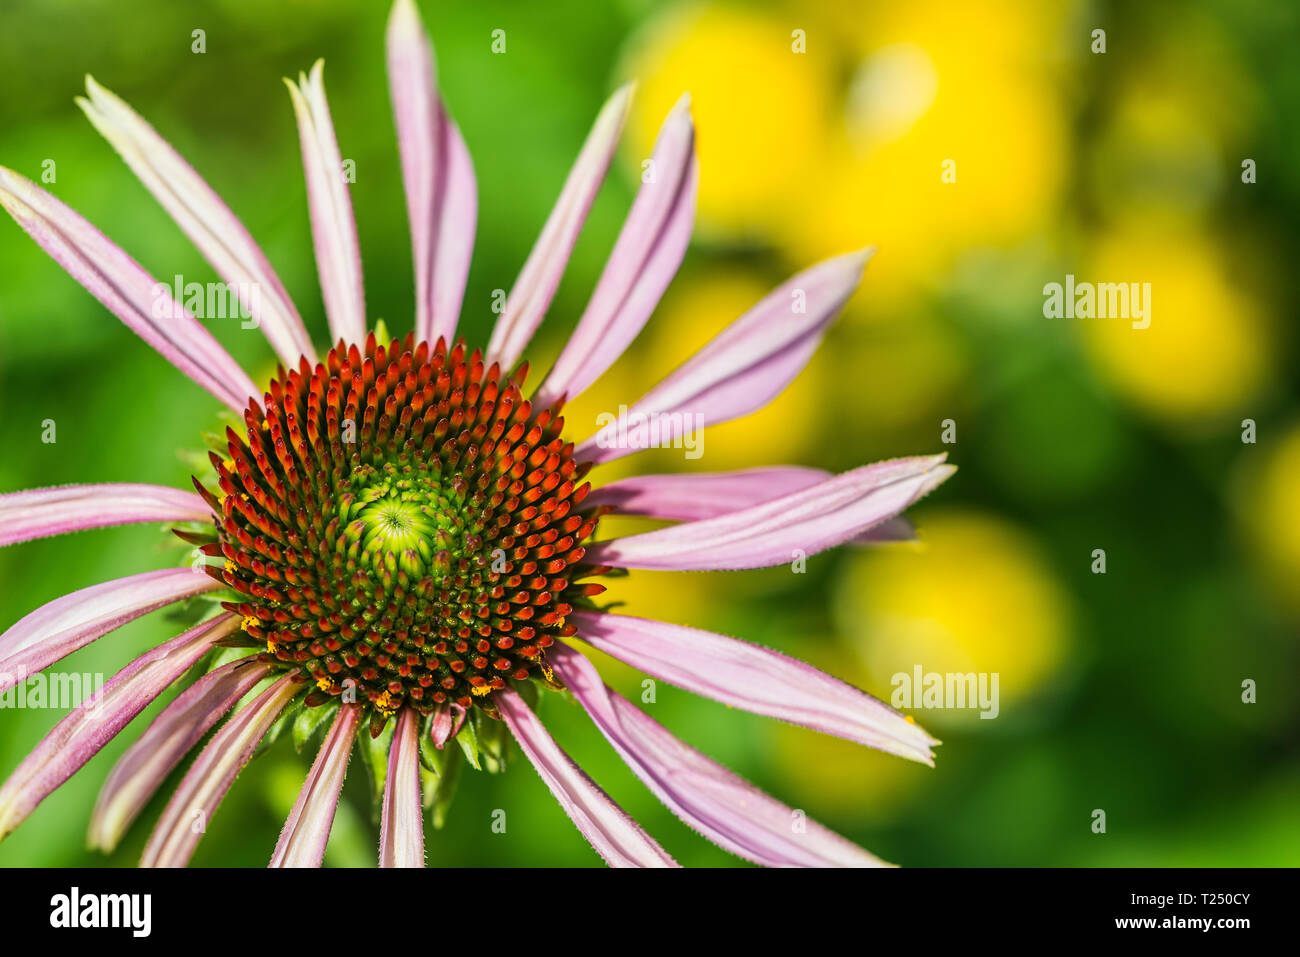 Close-up of flowerhead of pink cornflower, Echinacea purpurea 'Brilliant Star', combined with contrasting yellow flowers Stock Photo